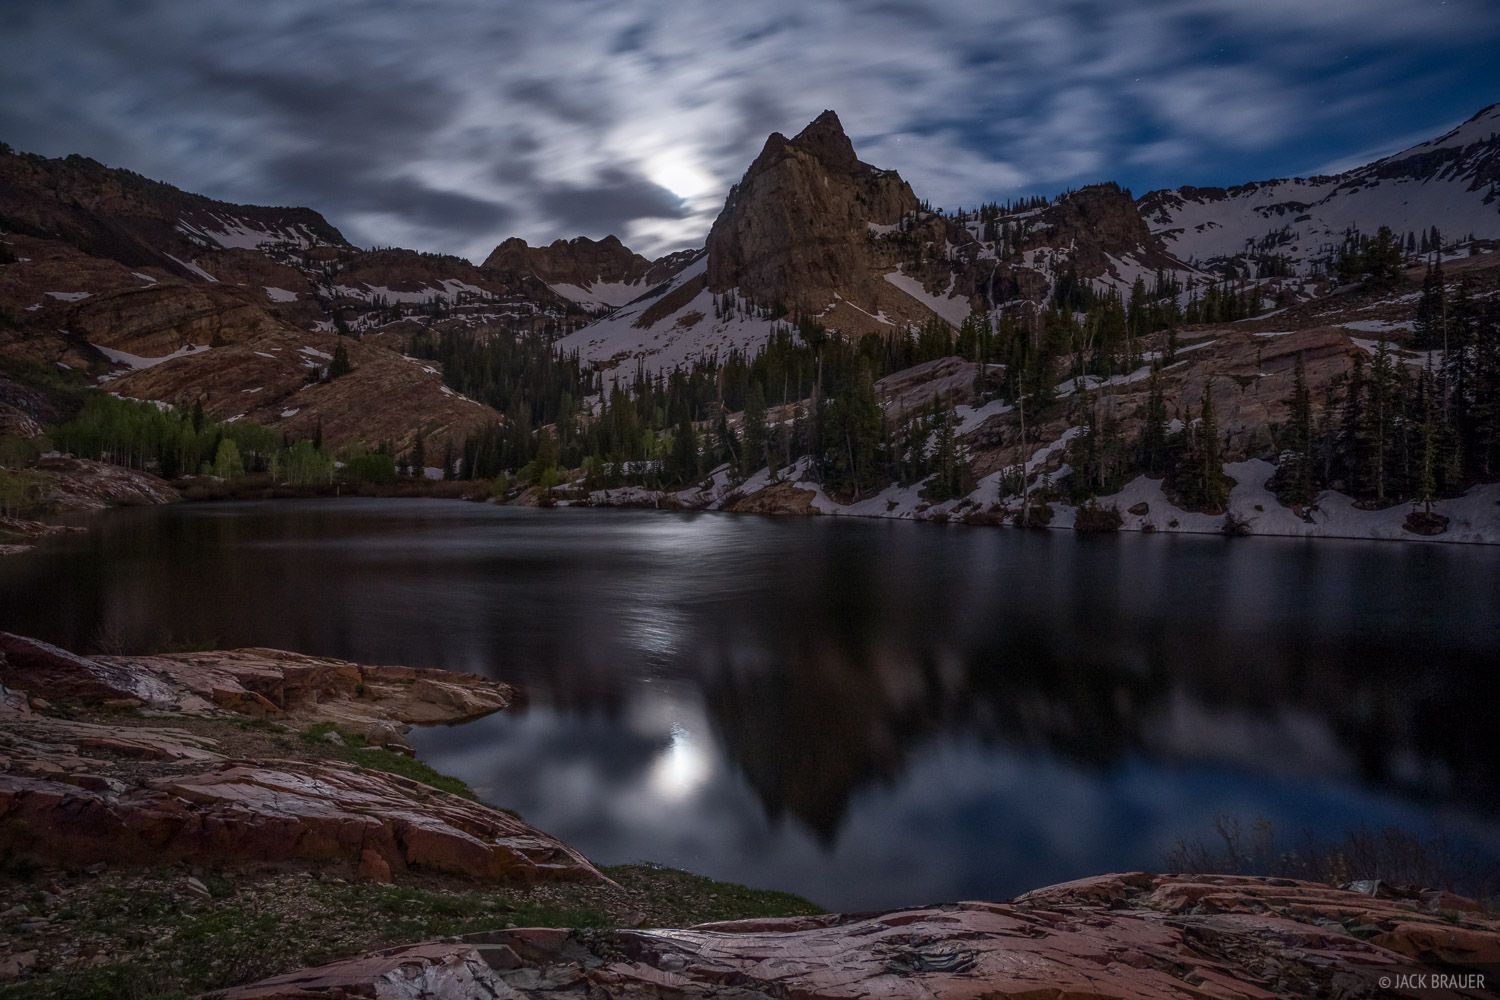 Lake Blanche, Sundial Peak, Twin Peaks Wilderness, Utah, Wasatch Range, moonlight, photo